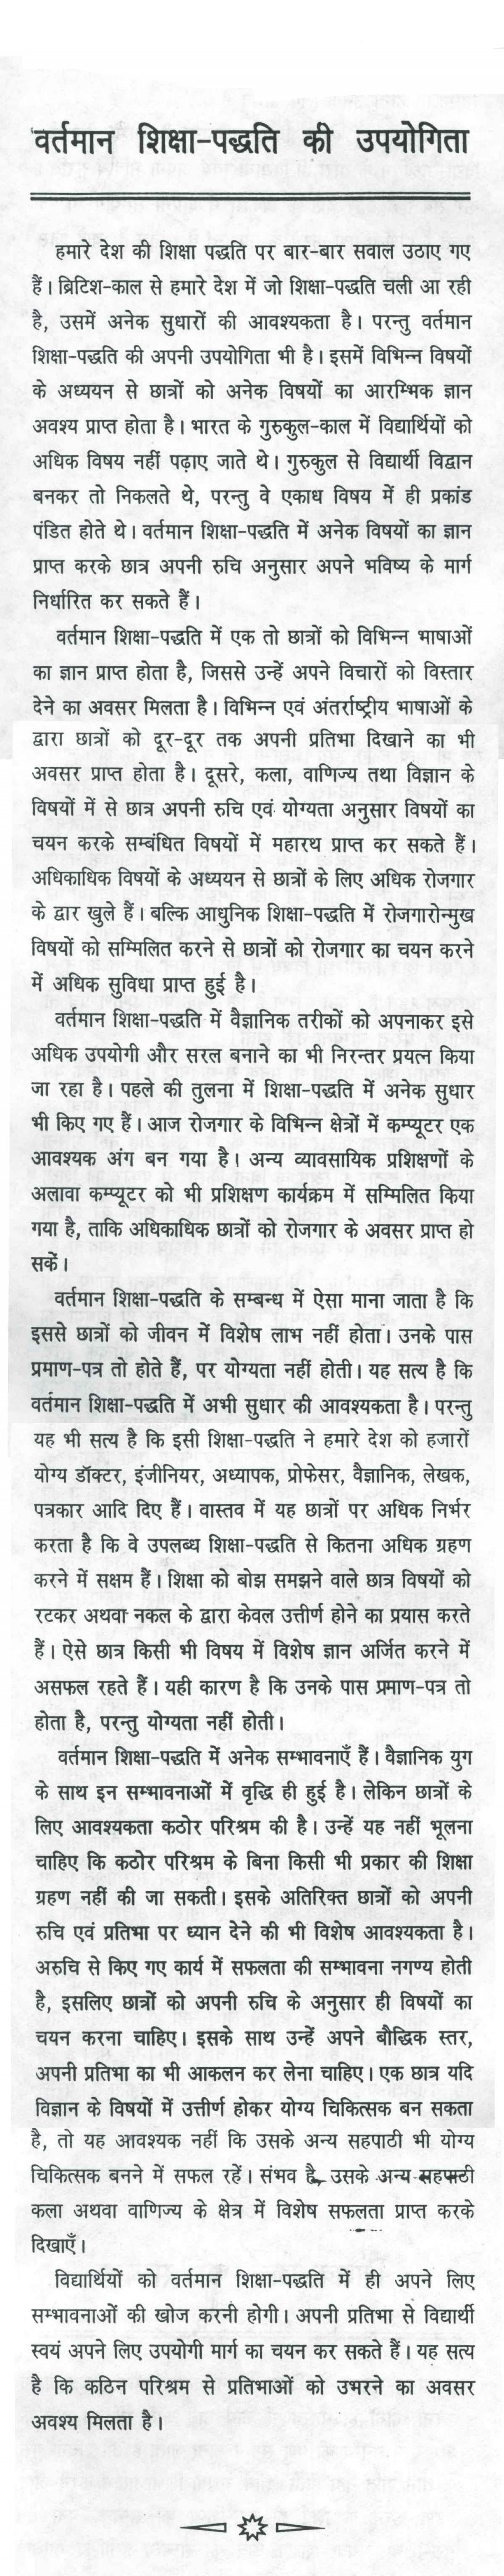 018 Cleanliness Essay In Hindi 10042 Thumb Sensational Is Godliness School 1920